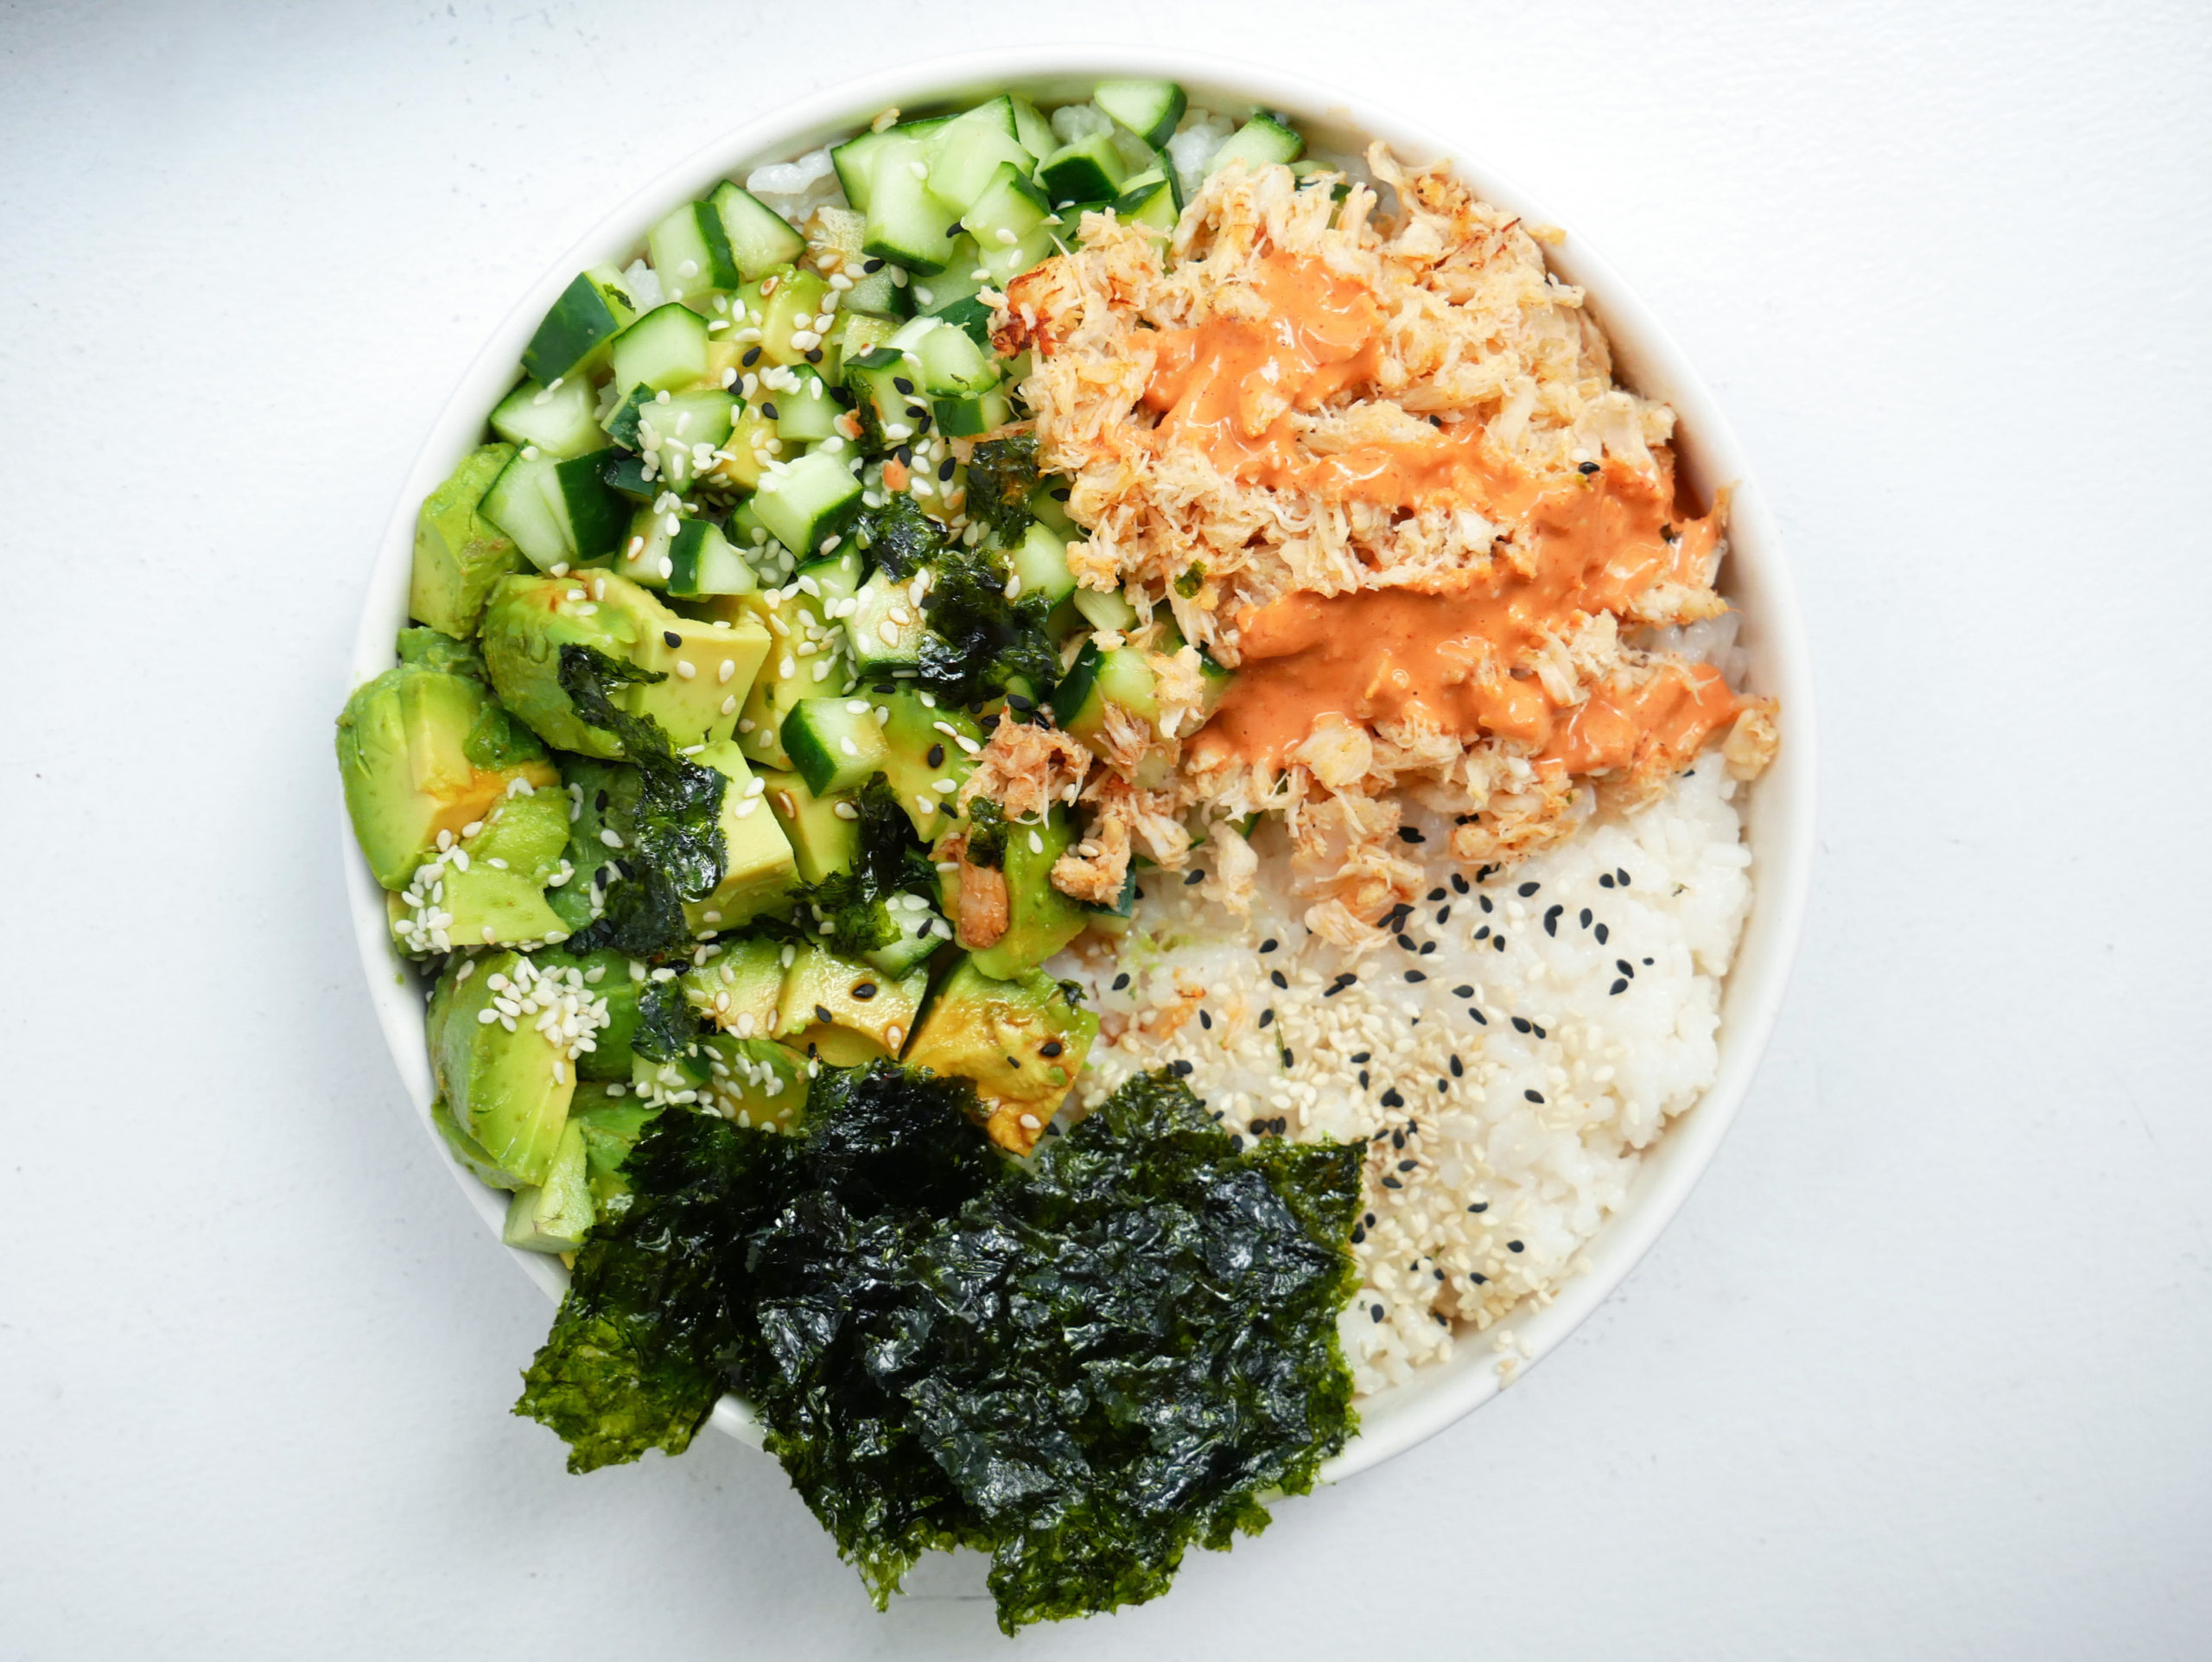 California roll poke bowl with avocado, cucumber, spicy mayo and seaweed